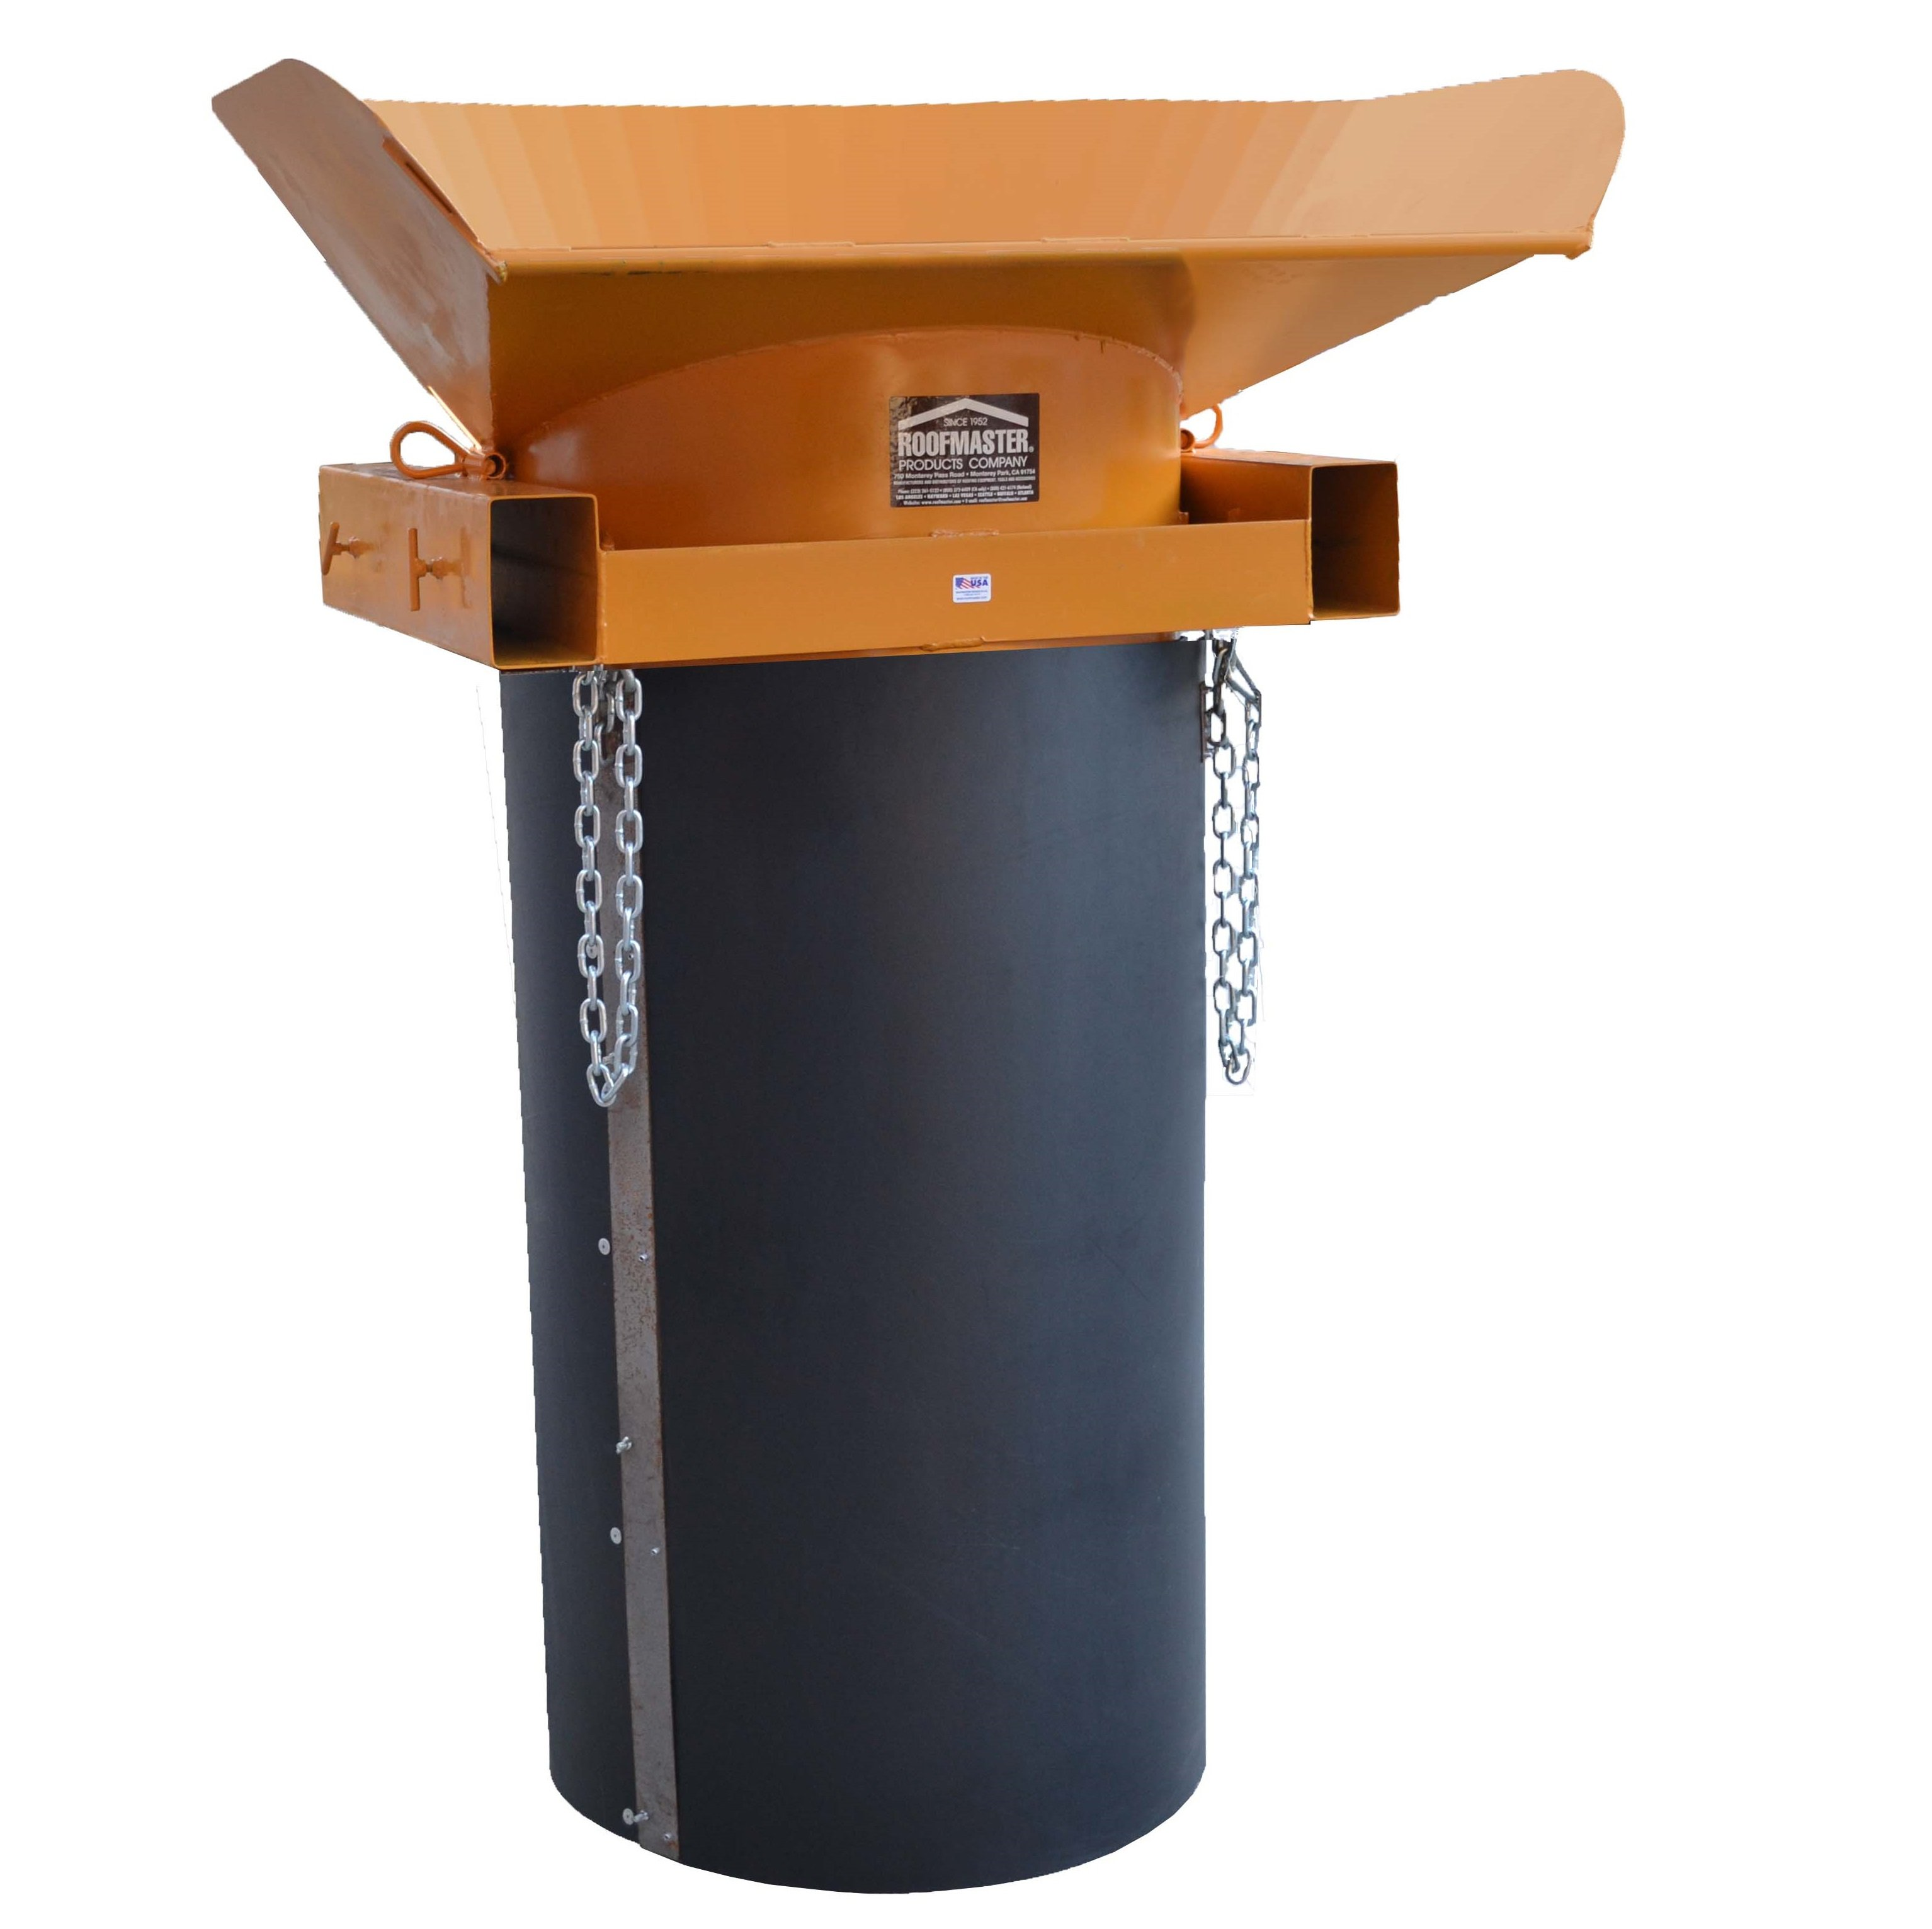 Trash Chute Rubbish : Roofmaster trash chute hopper